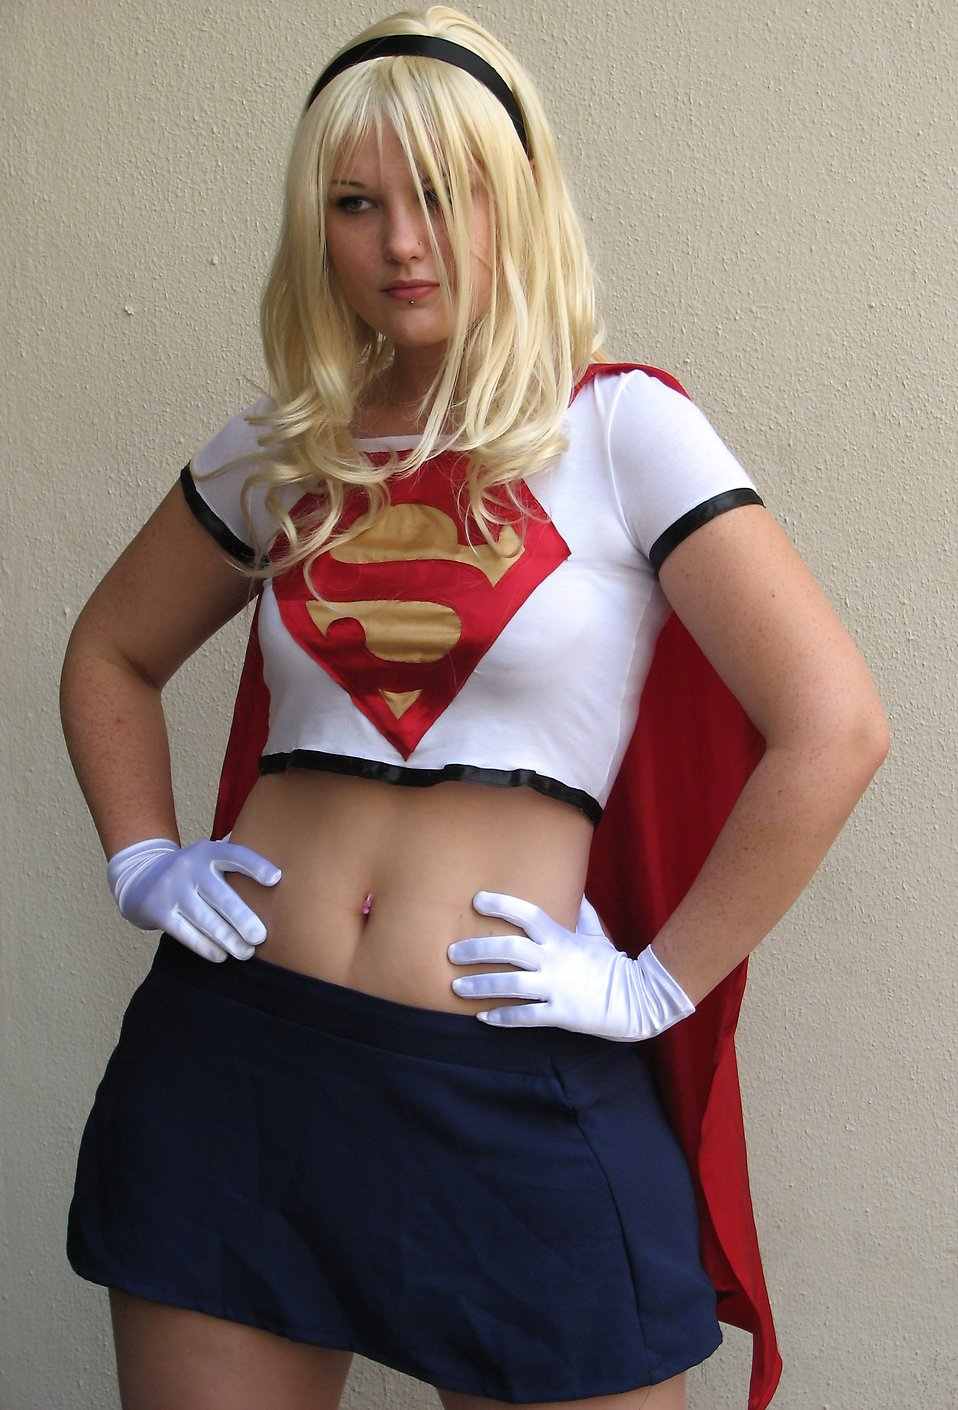 Beautiful young woman in Supergirl costume at Dragoncon 2008 : Free Stock Photo